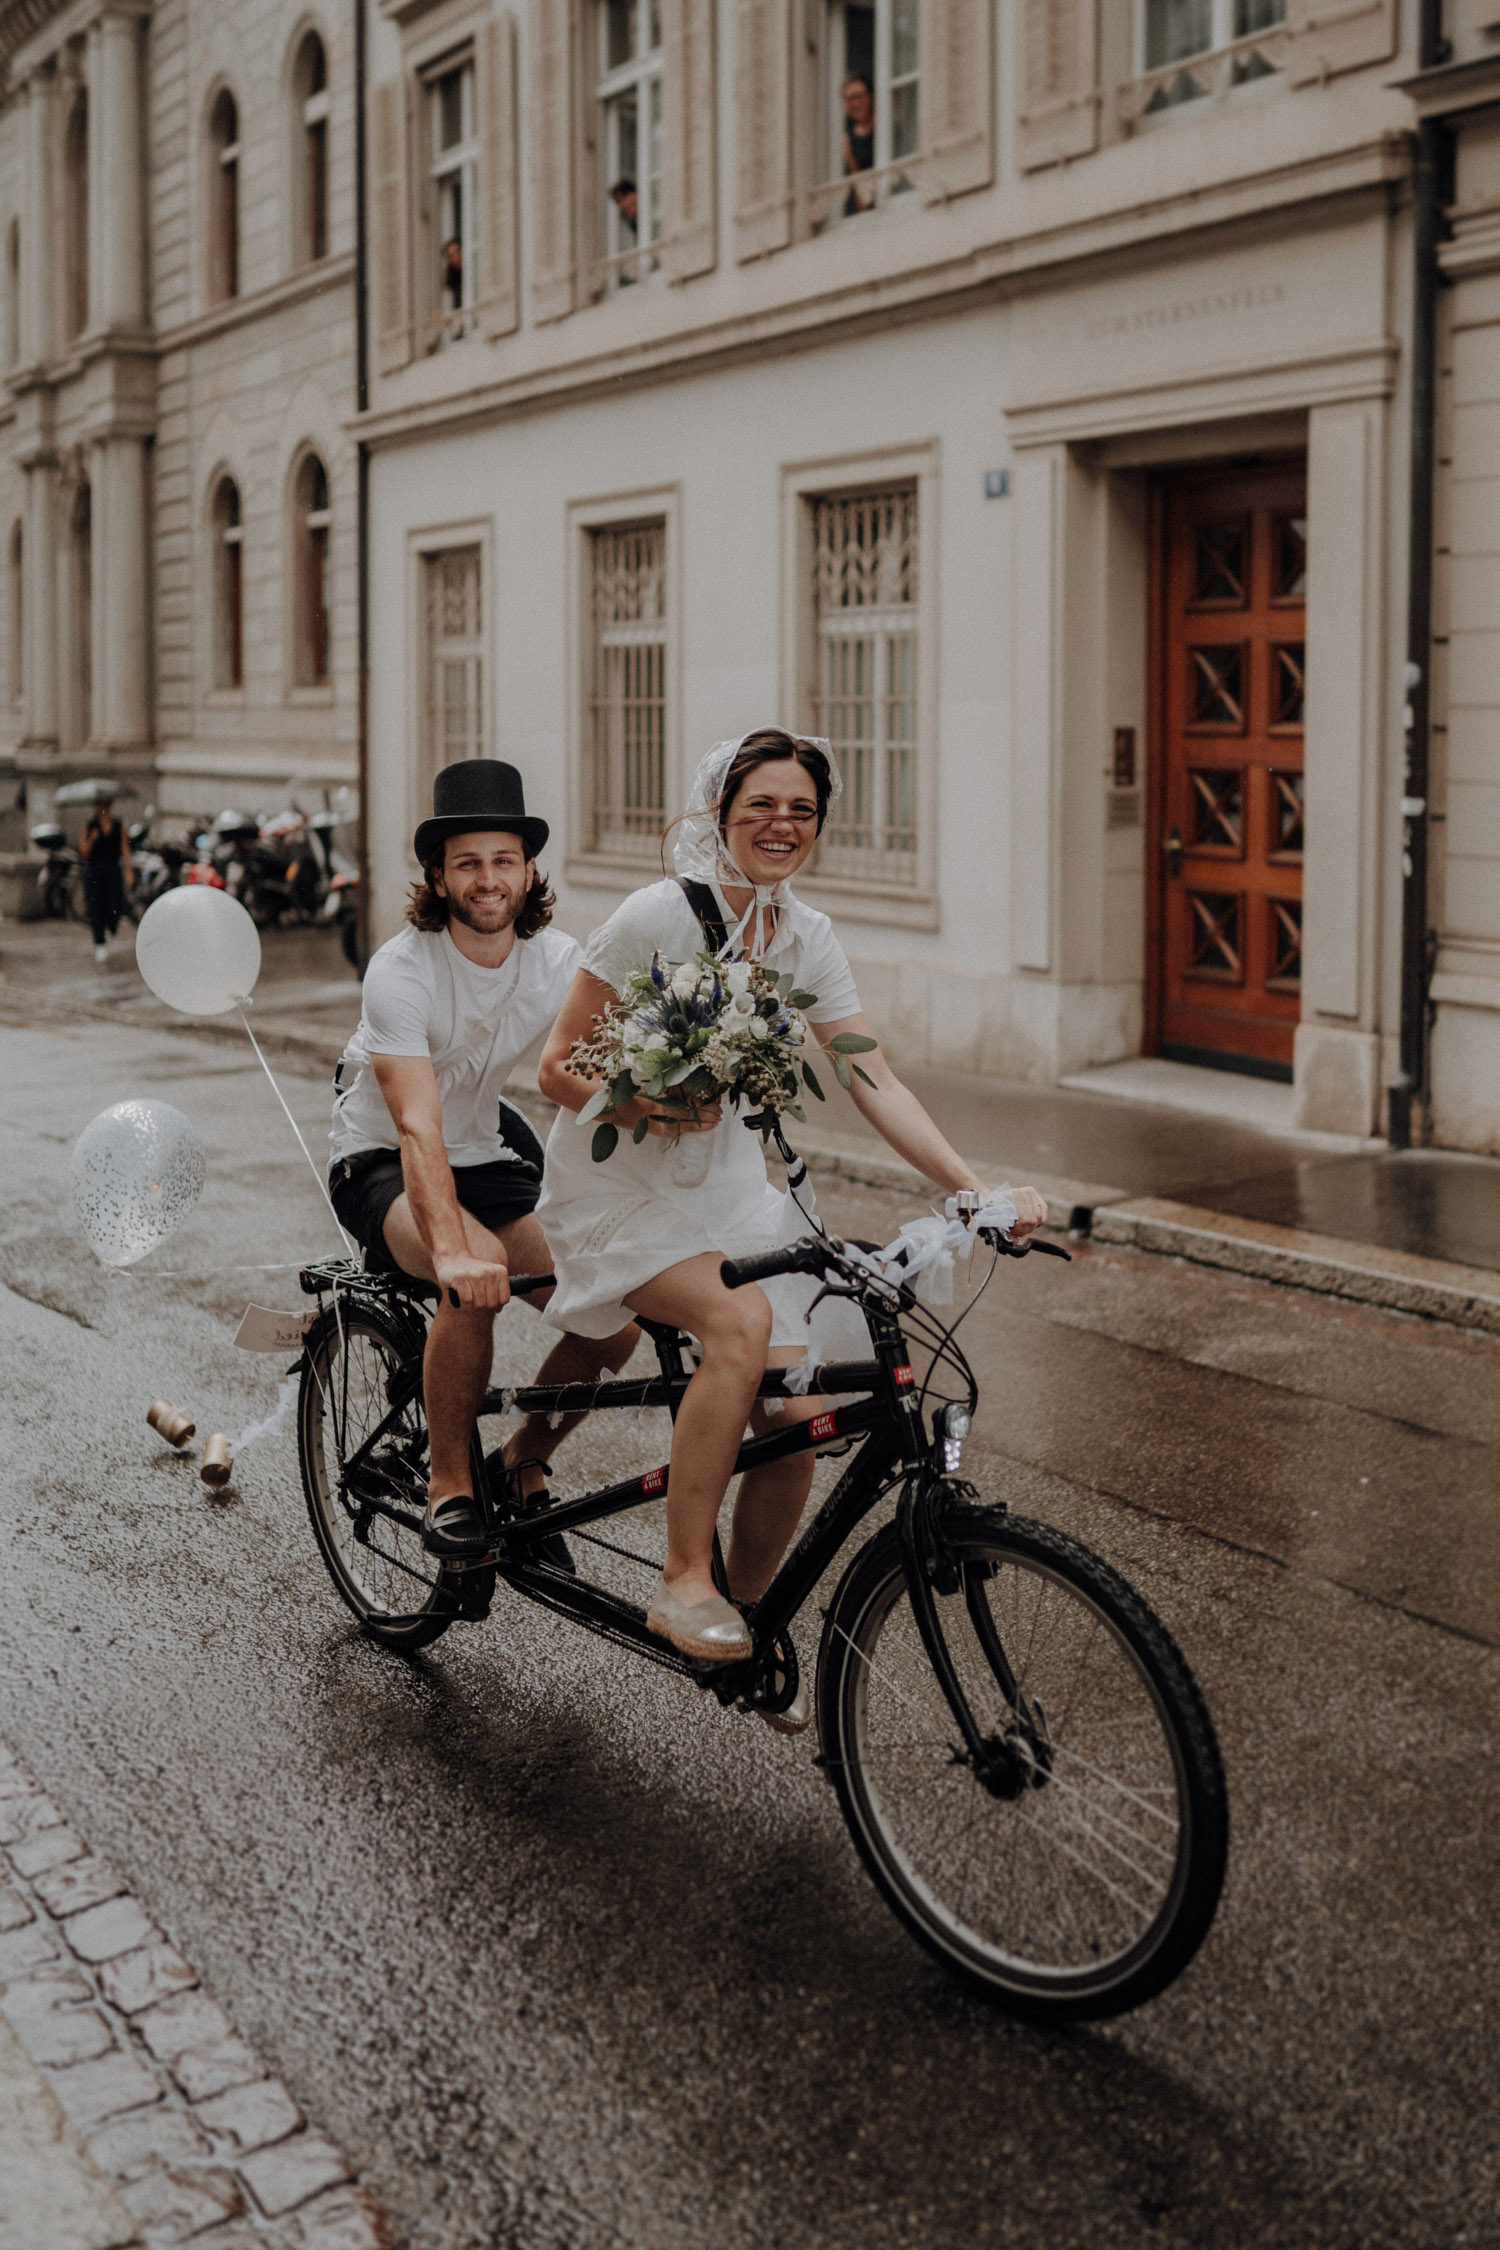 Wedding photographer switzerland basel natural unposed civil wedding old town Basel Minster couple shoot bohemian style documentary rainy wedding tandem